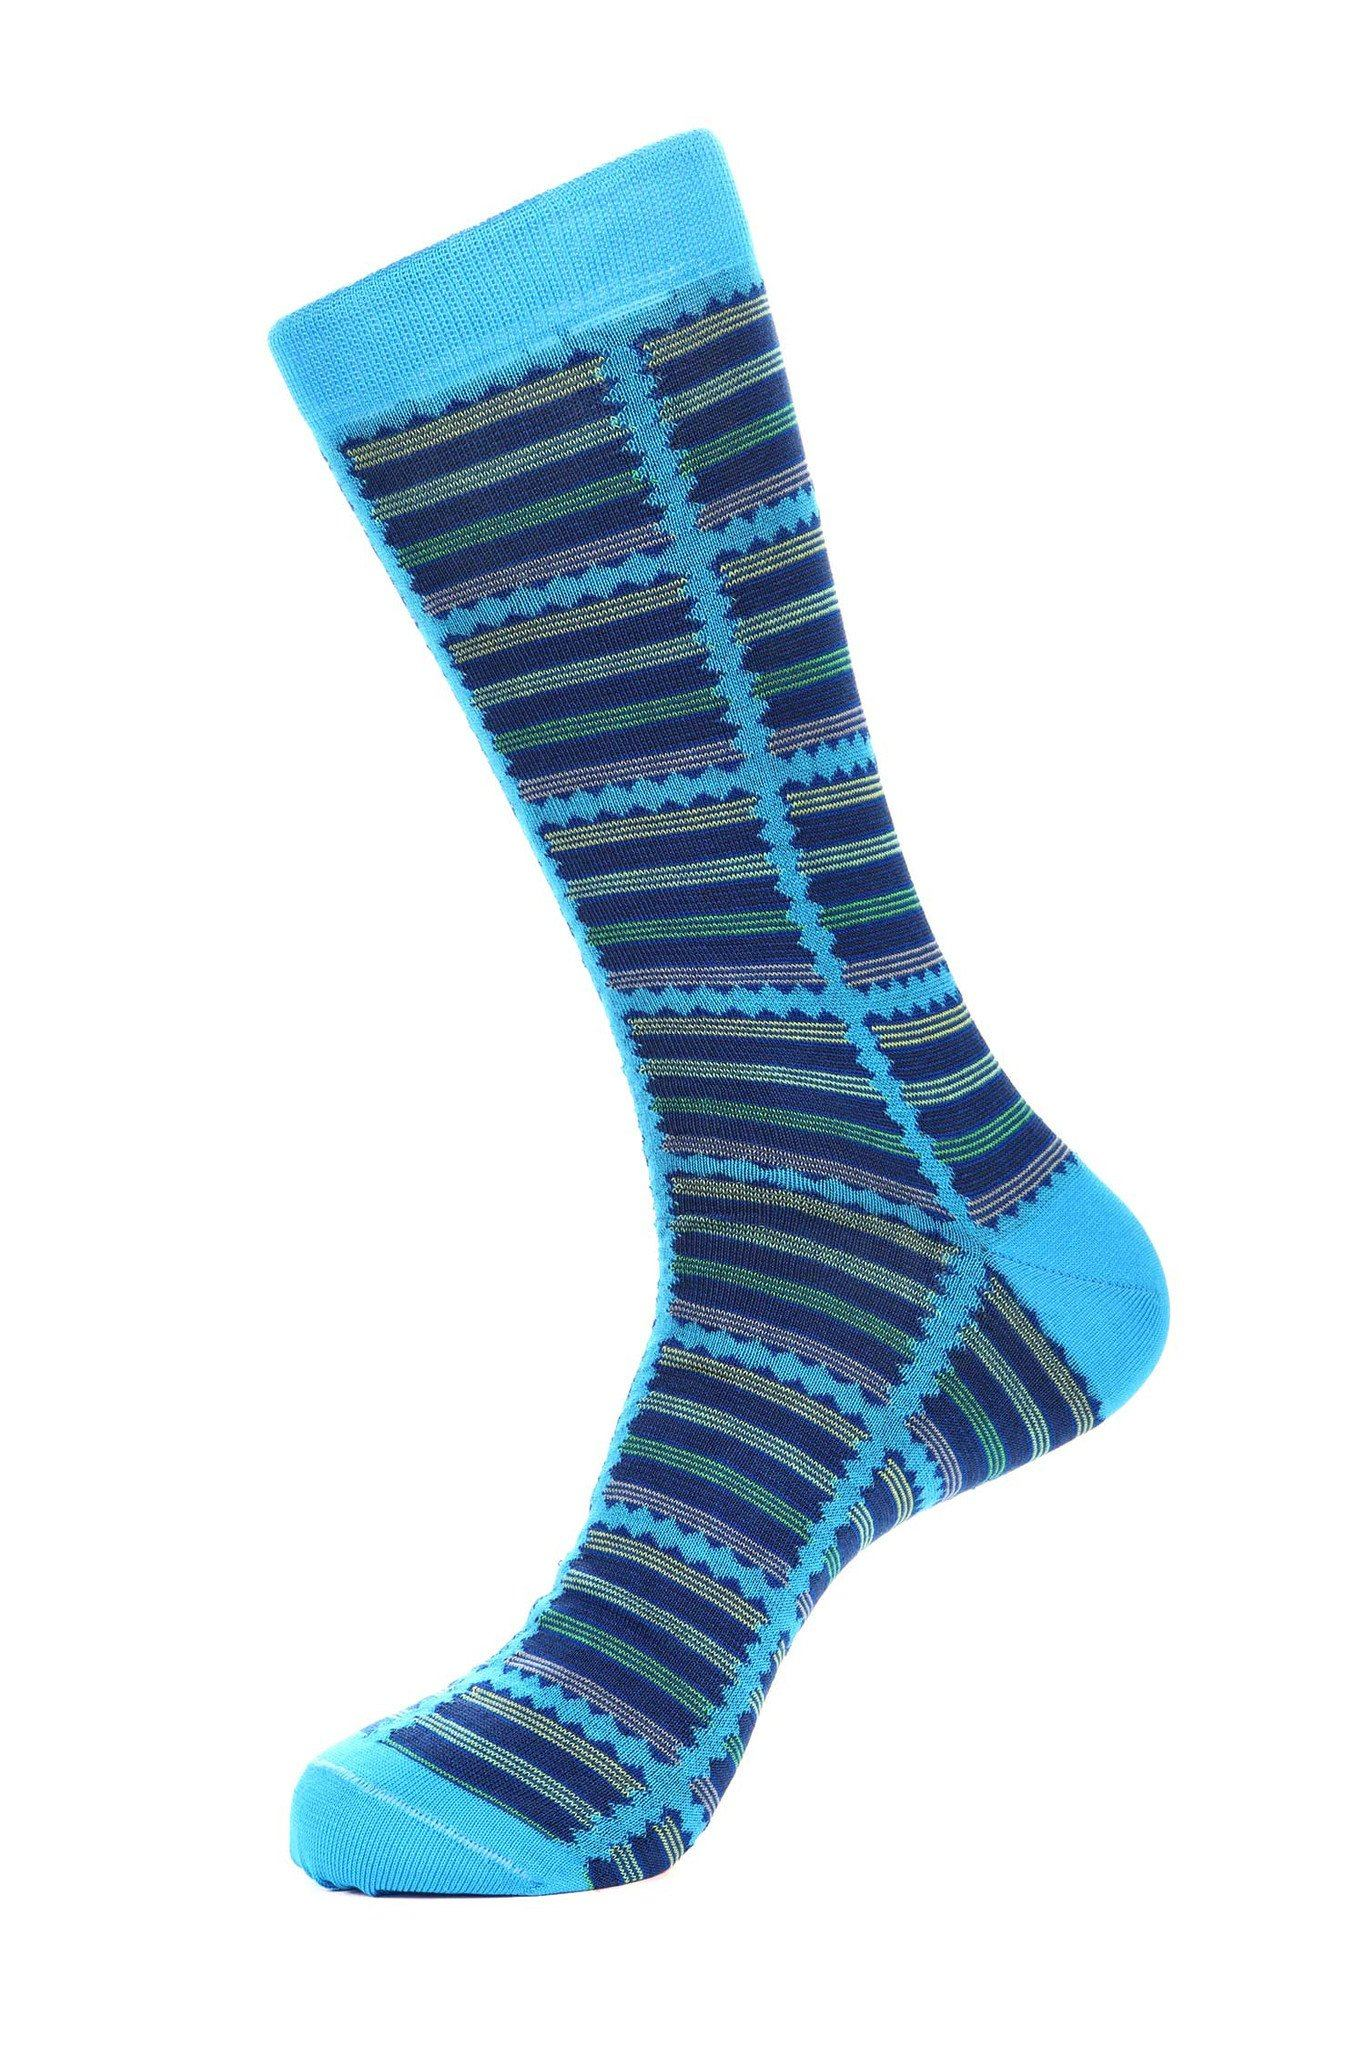 JL-11020-2,socks,Jared Lang, | GentRow.com